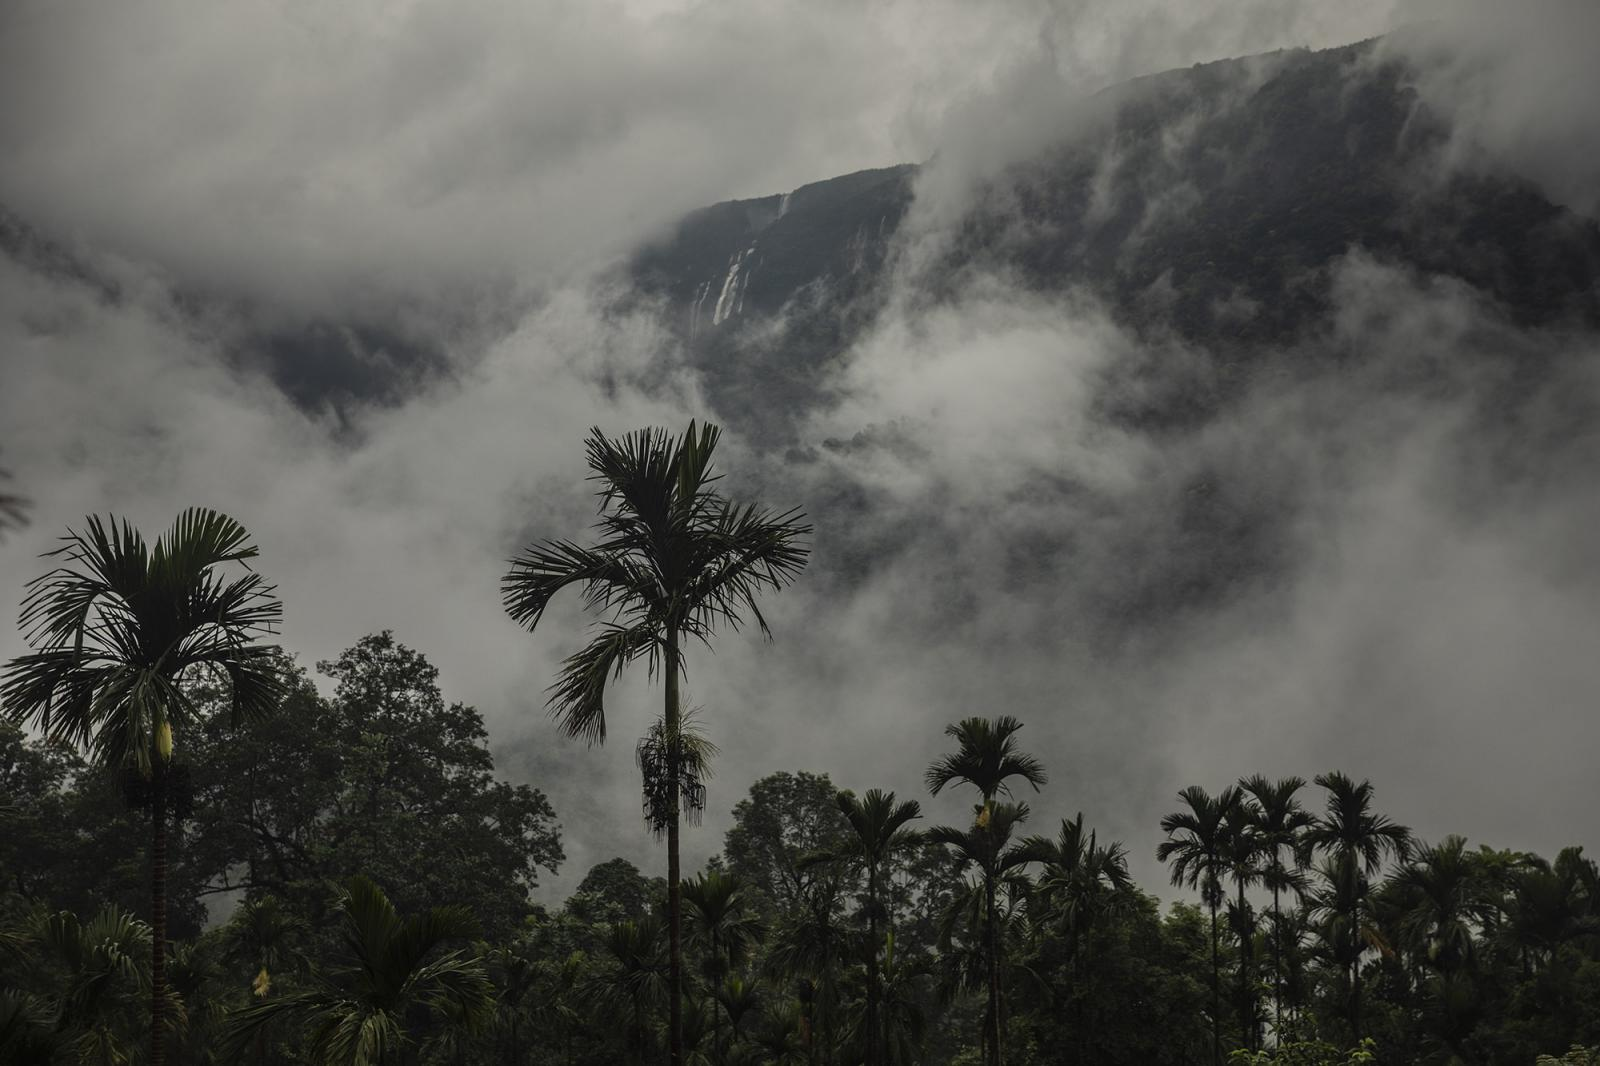 Photography image - Loading 003_Santi_Palacios_The_wettest_place_on_earth.jpg